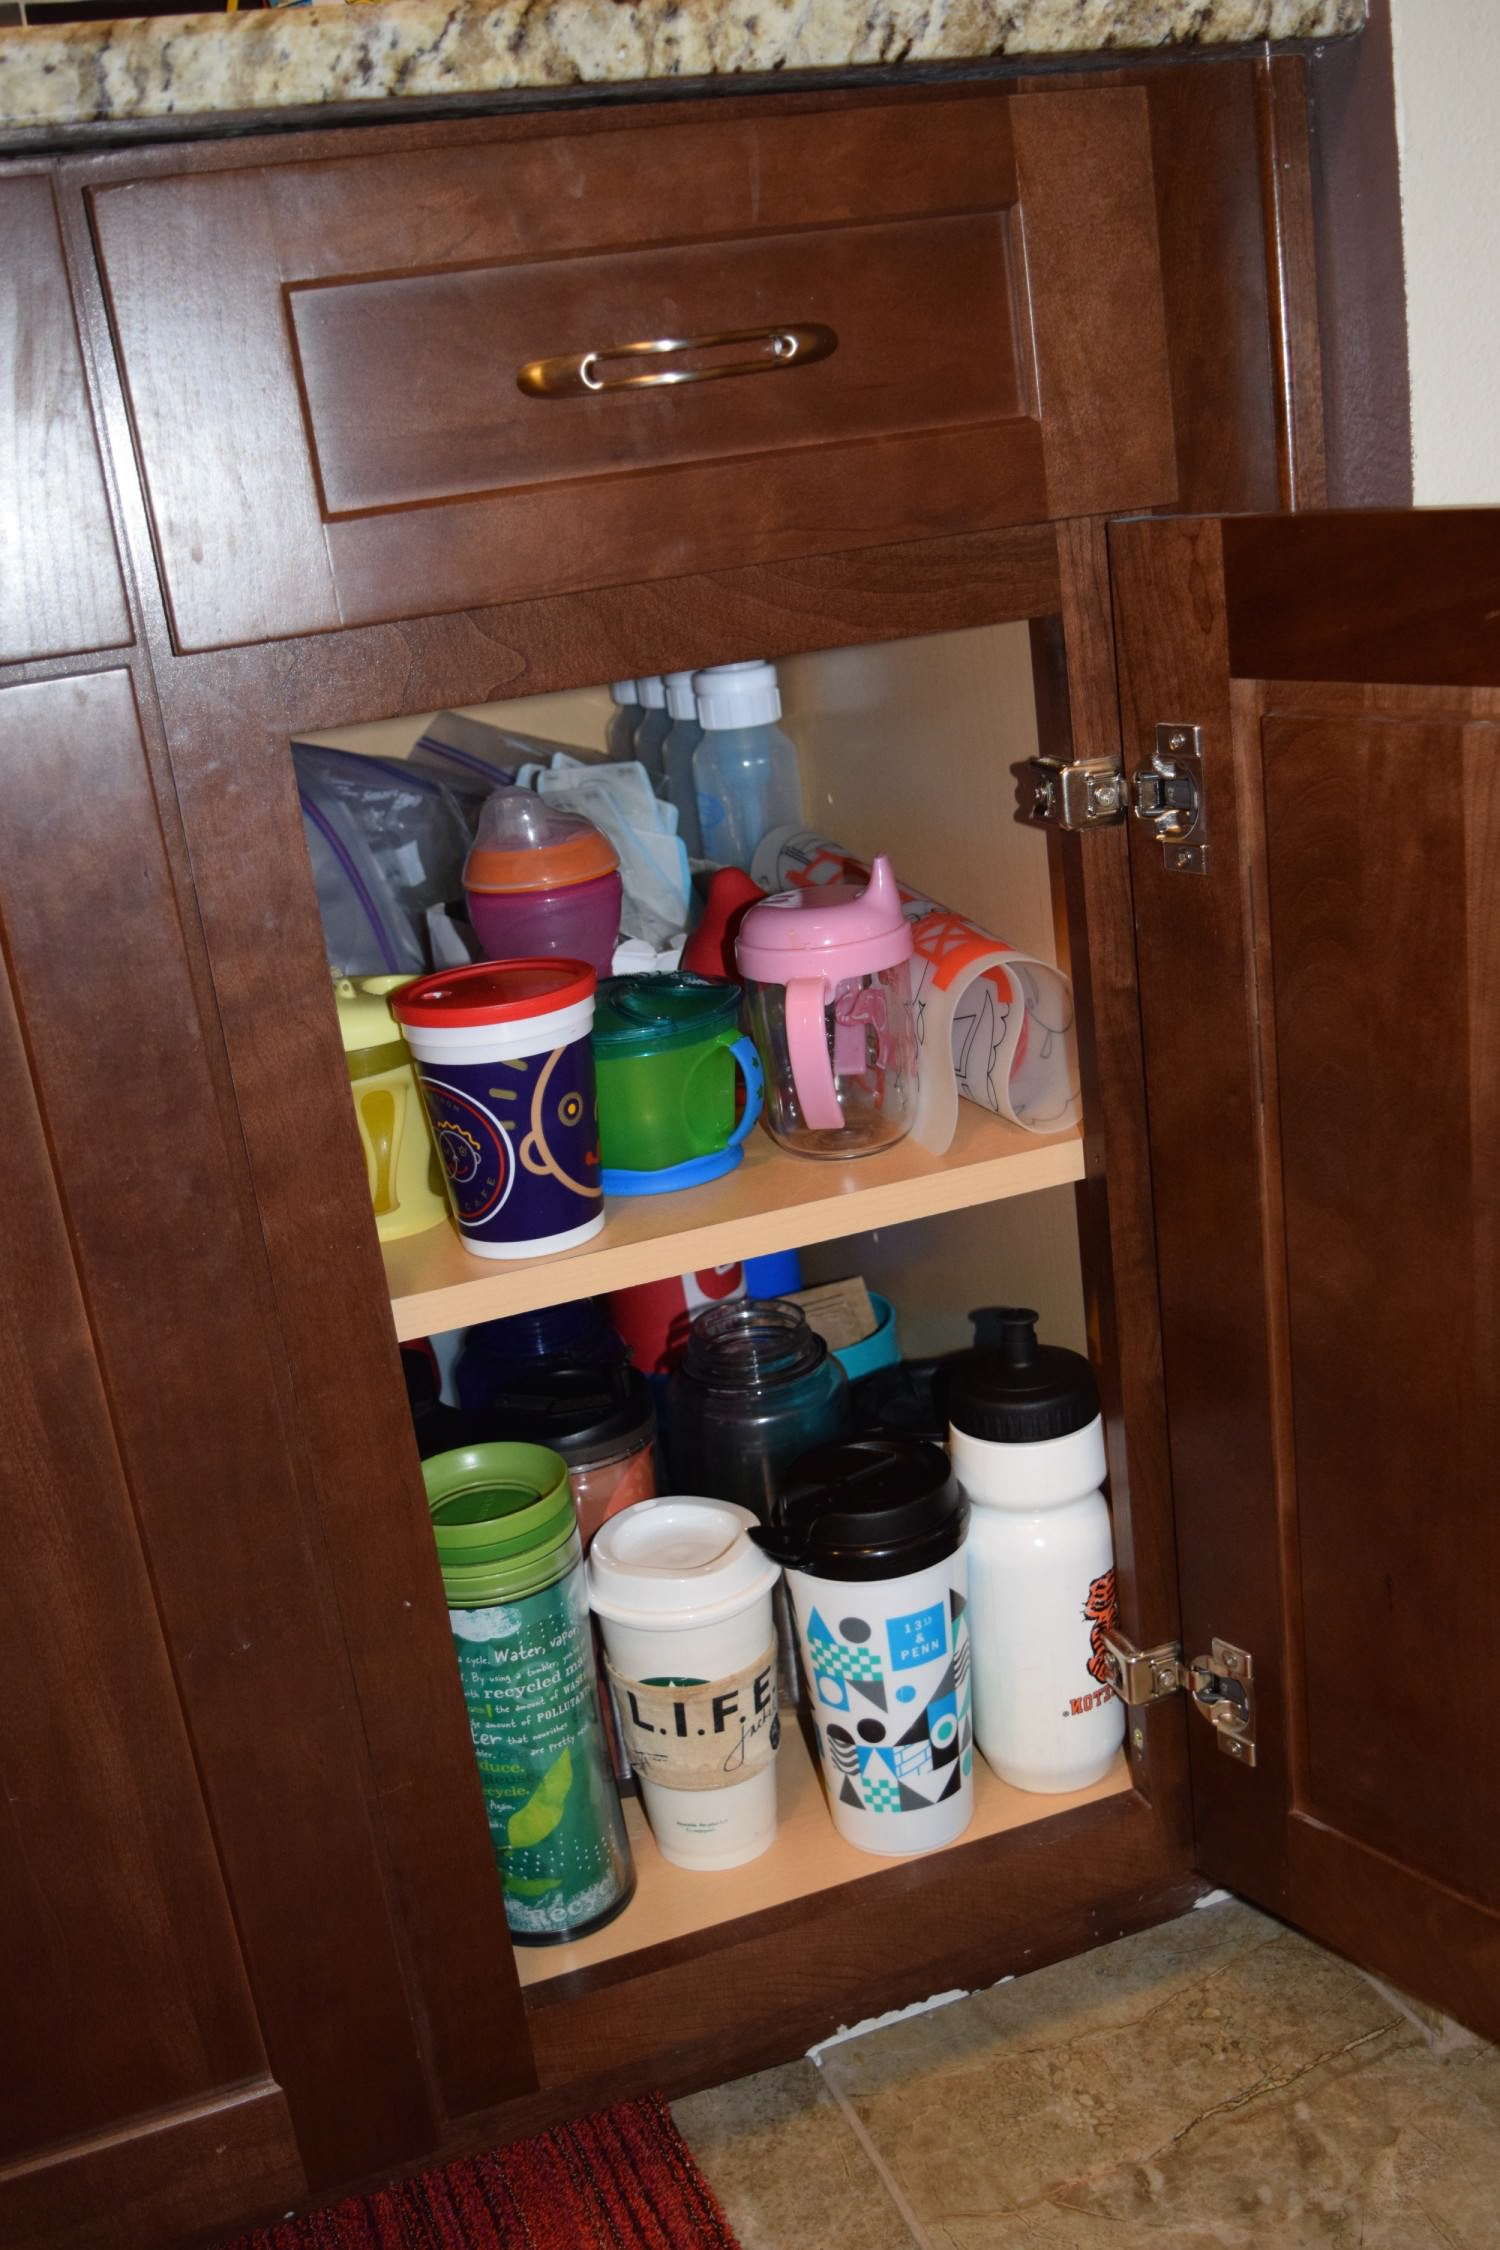 A fully stocked baby/toddler friendly cabinet.